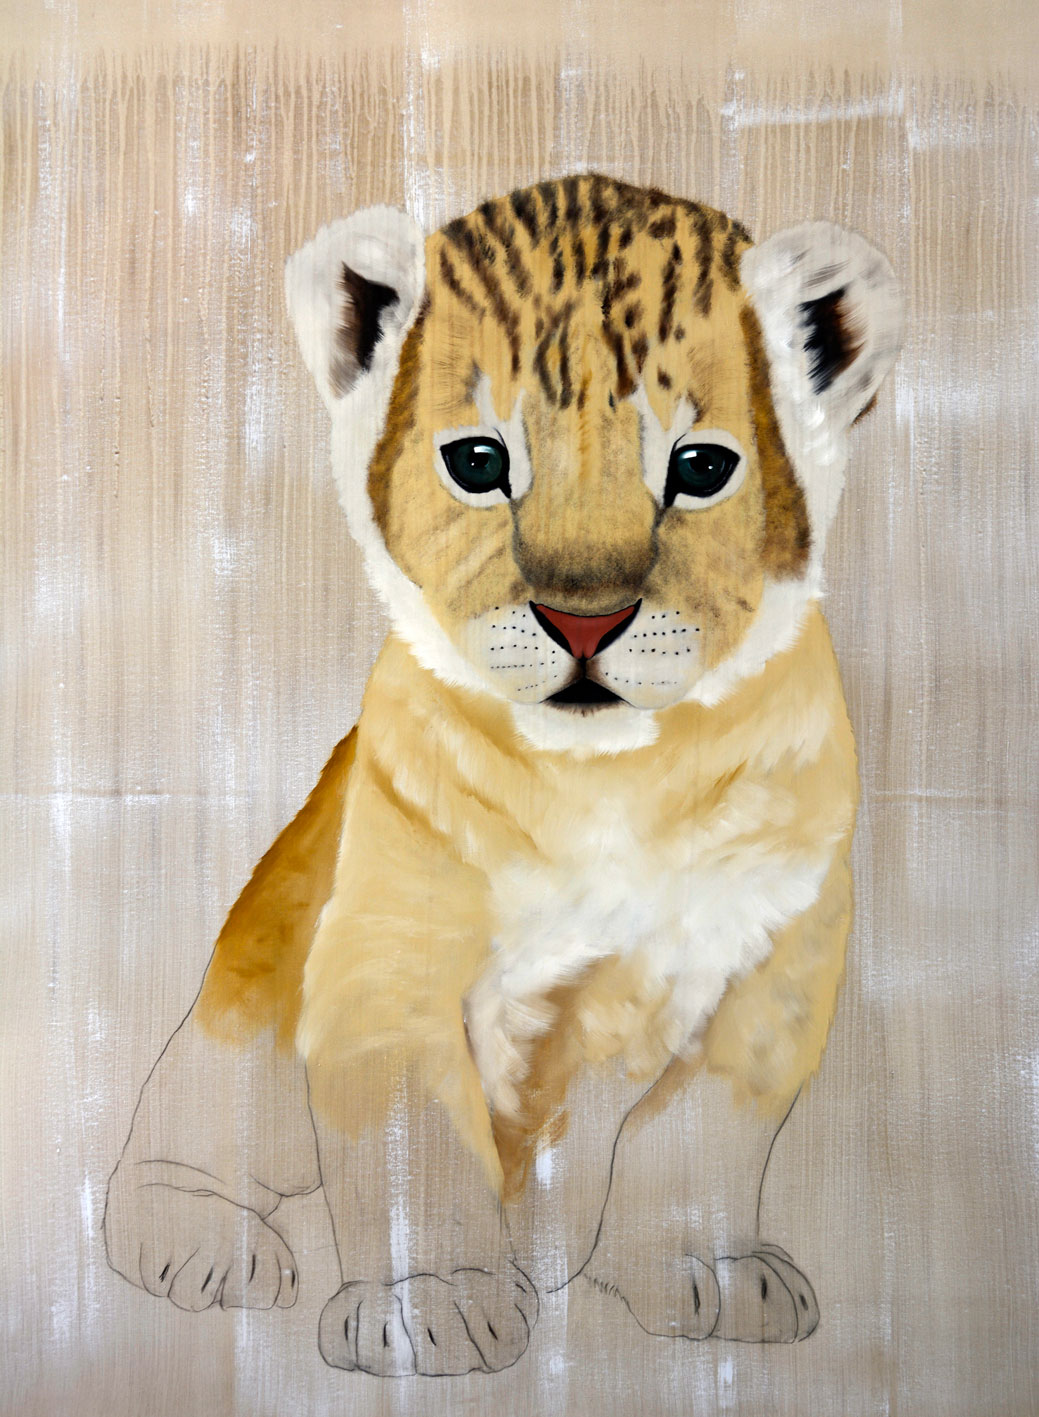 PANTHERA LEO PERSICA panthera-leo-lion-cub-delete-threatened-endangered-extinction- Animal painting by Thierry Bisch pets wildlife artist painter canvas art decoration